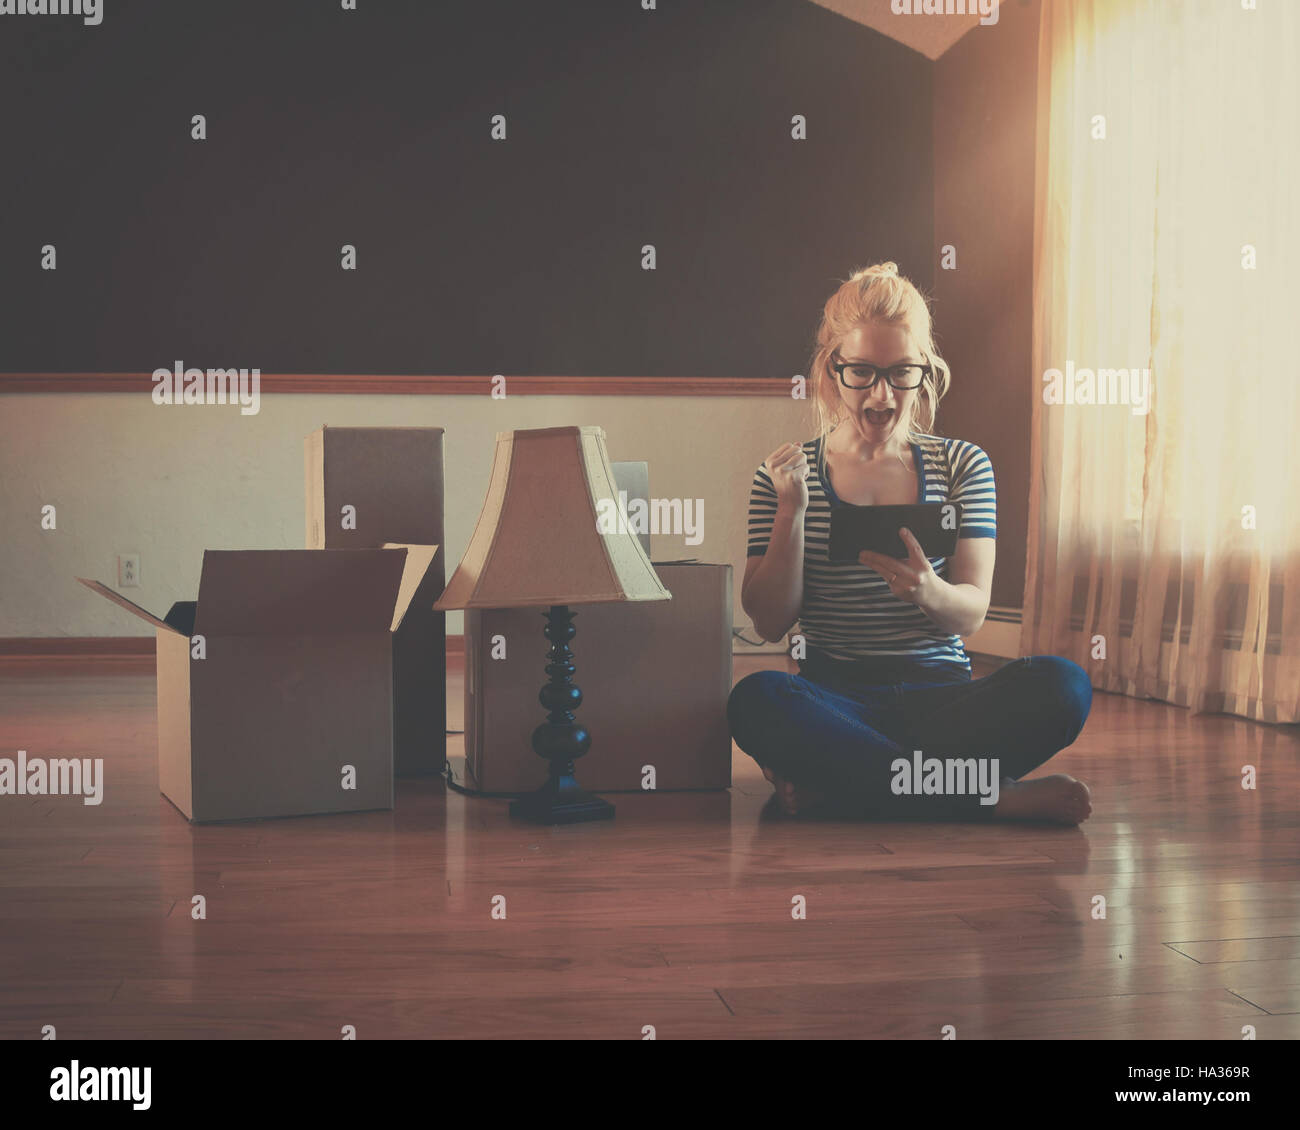 A girl is sitting in an empty room with boxes. She is holding a technology tablet for an interior design or moving - Stock Image